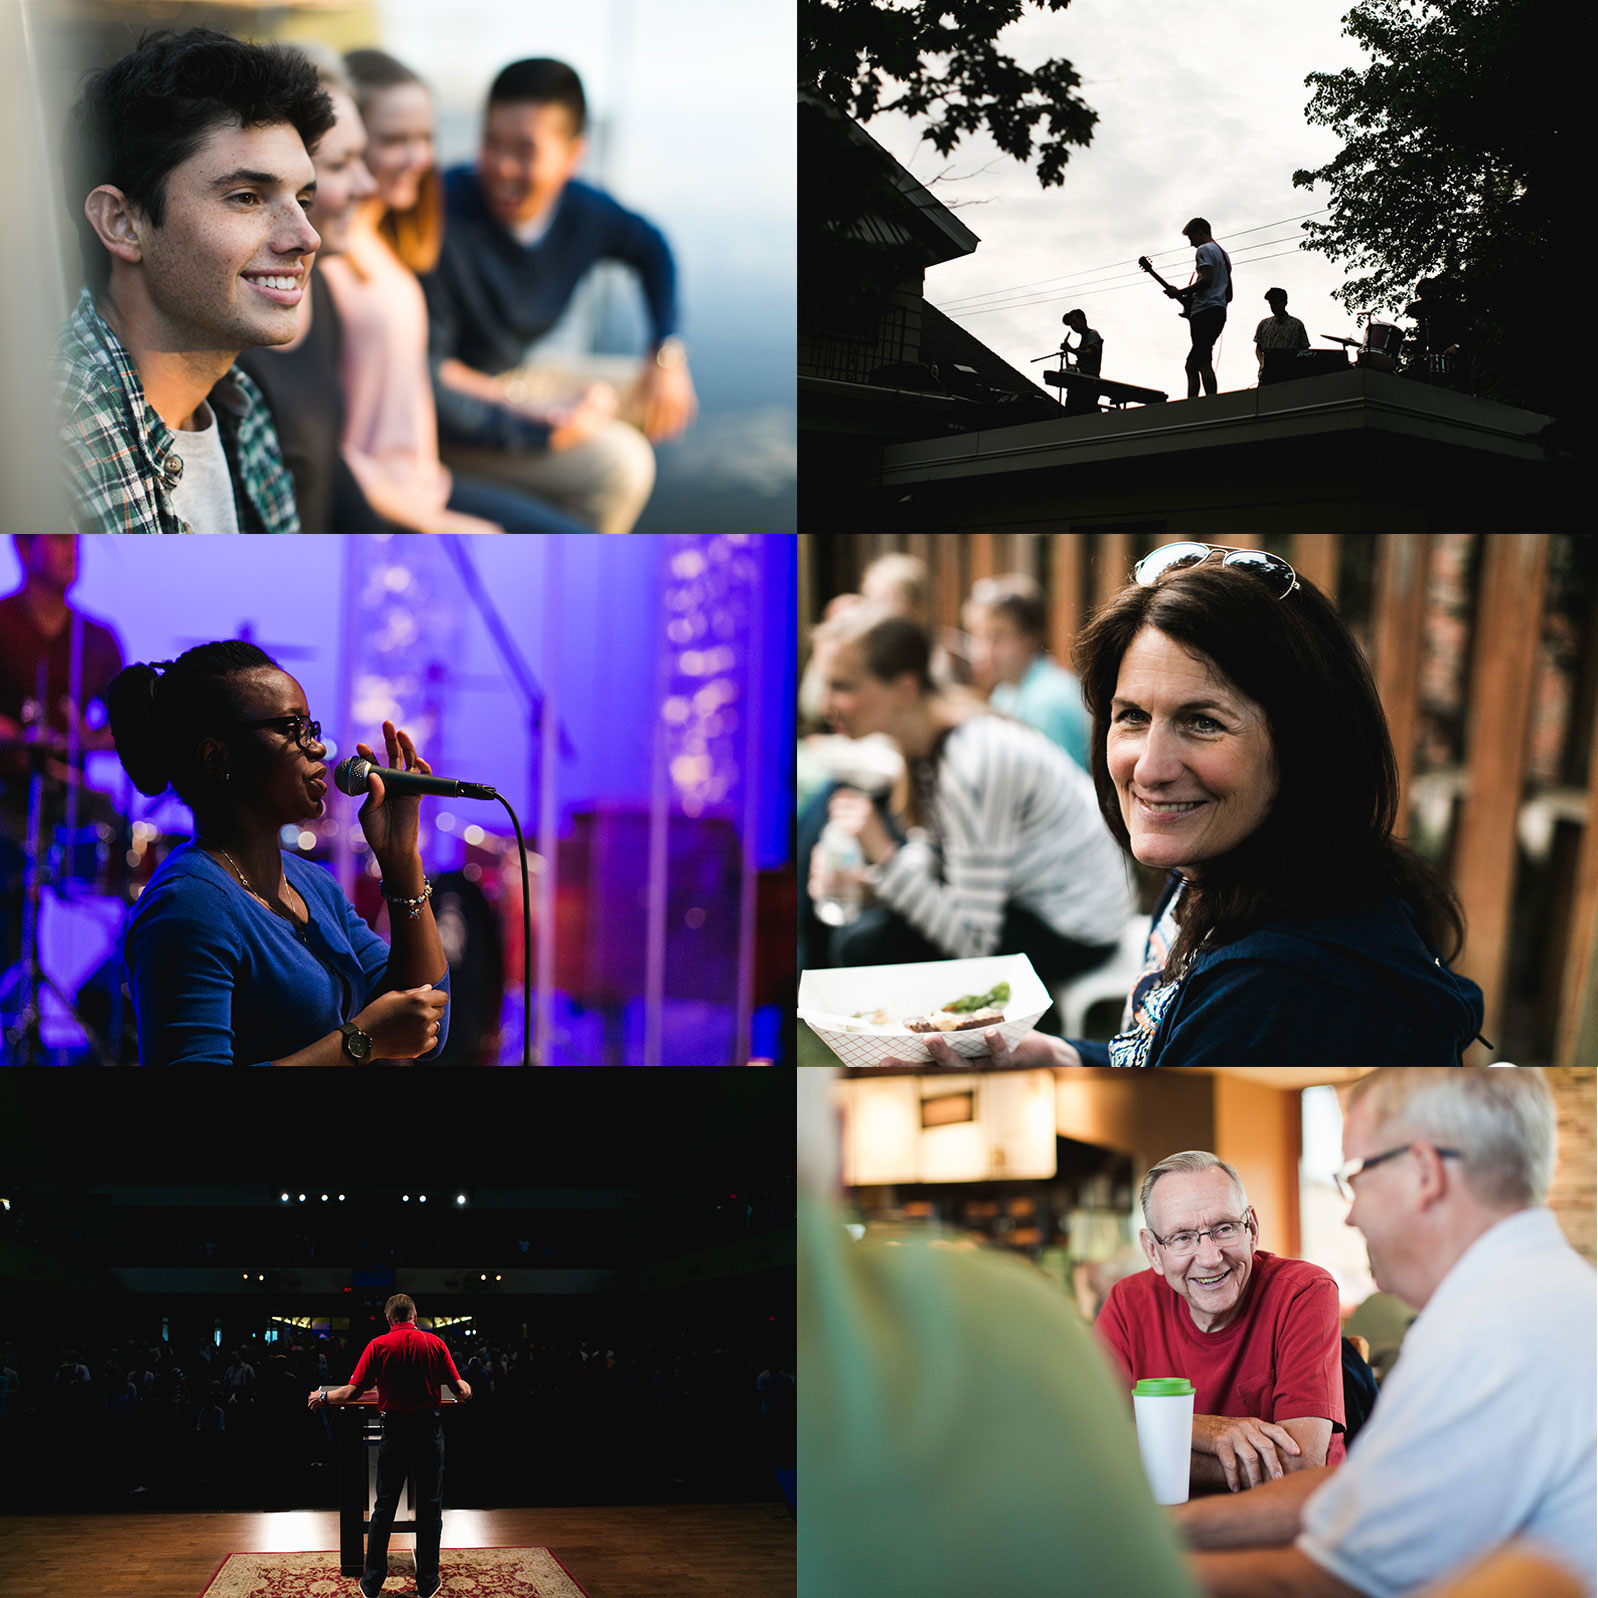 Photo grid of smiling young adults, a band playing on a roof, a pretty black lady singing into a microphone, a sweet older woman holding a hamburger at a ballgame, a pastor preaching on stage, a group of older gentlemen drinking coffee